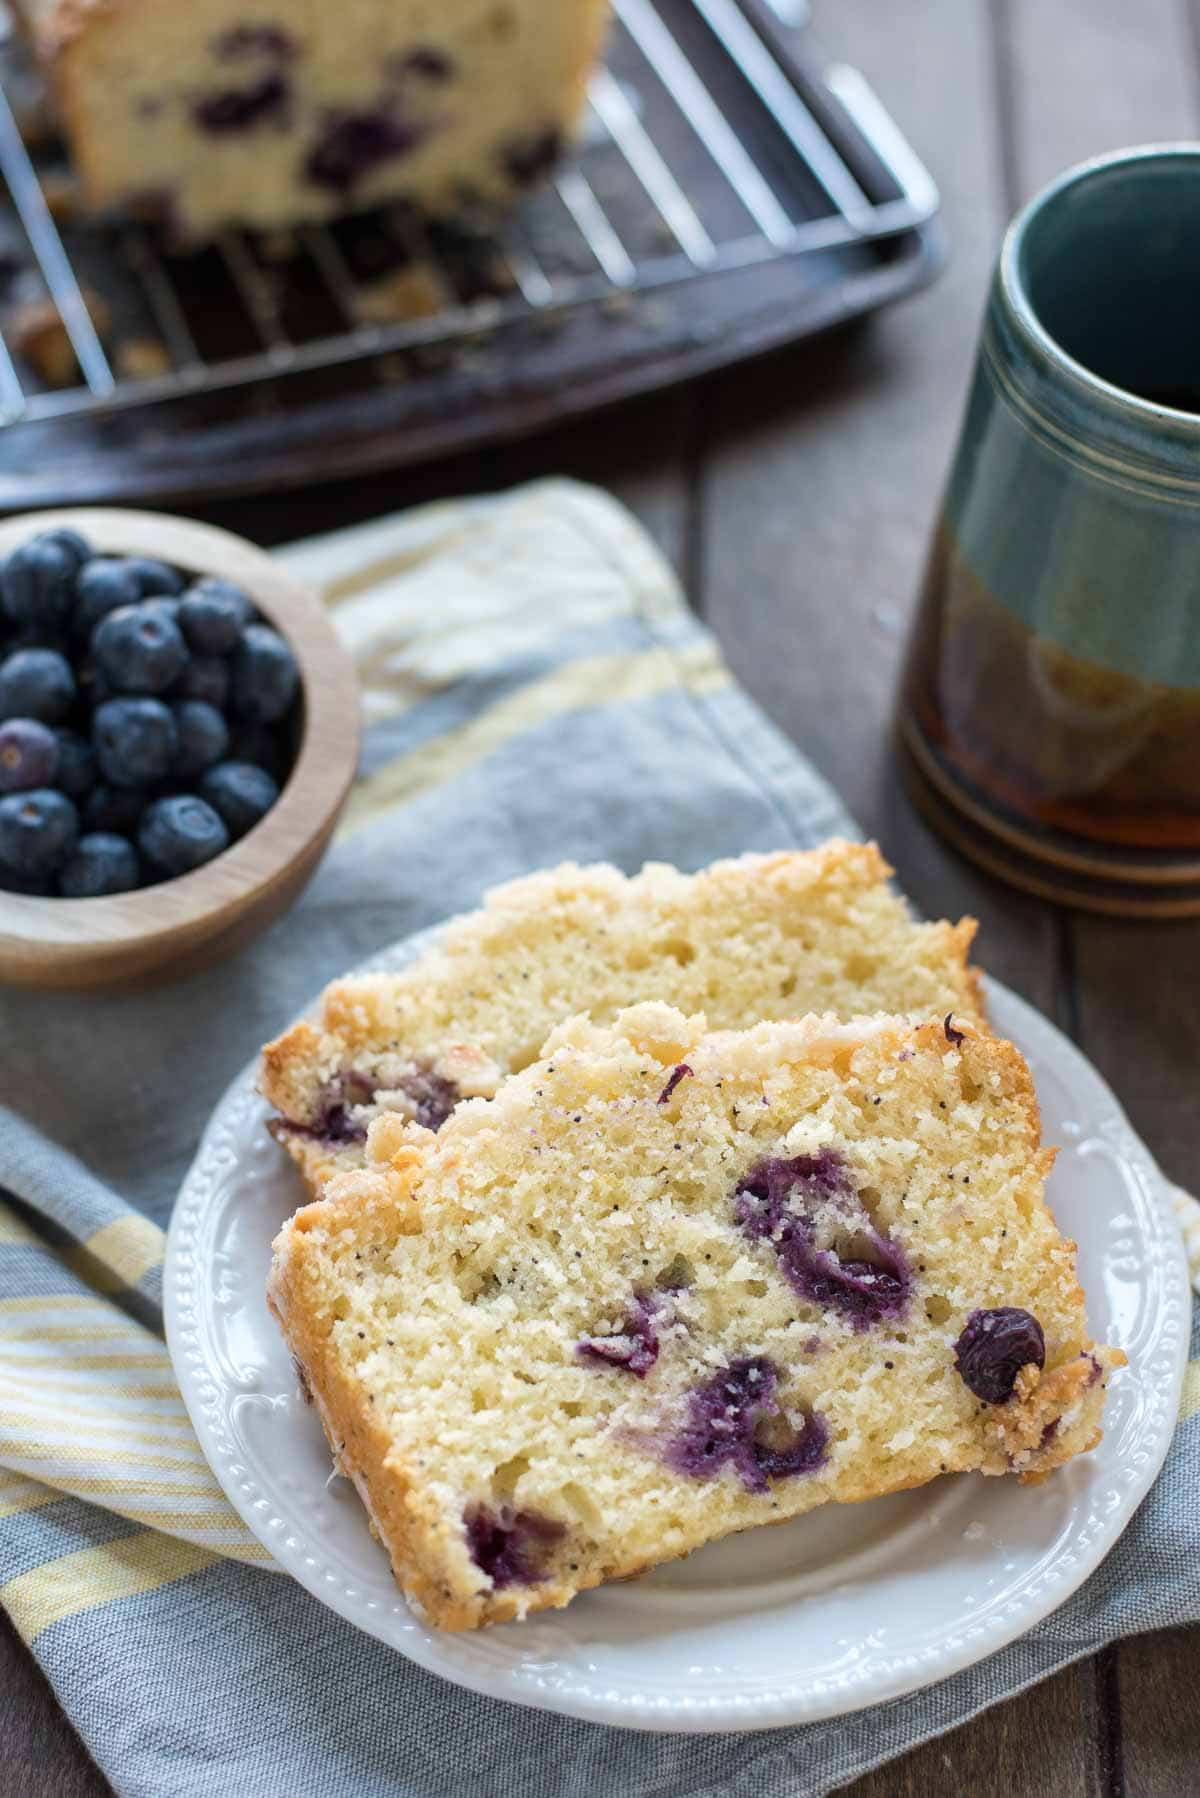 This tangy sweet Lemon Blueberry Crumb Bread is the ultimate spring breakfast treat!